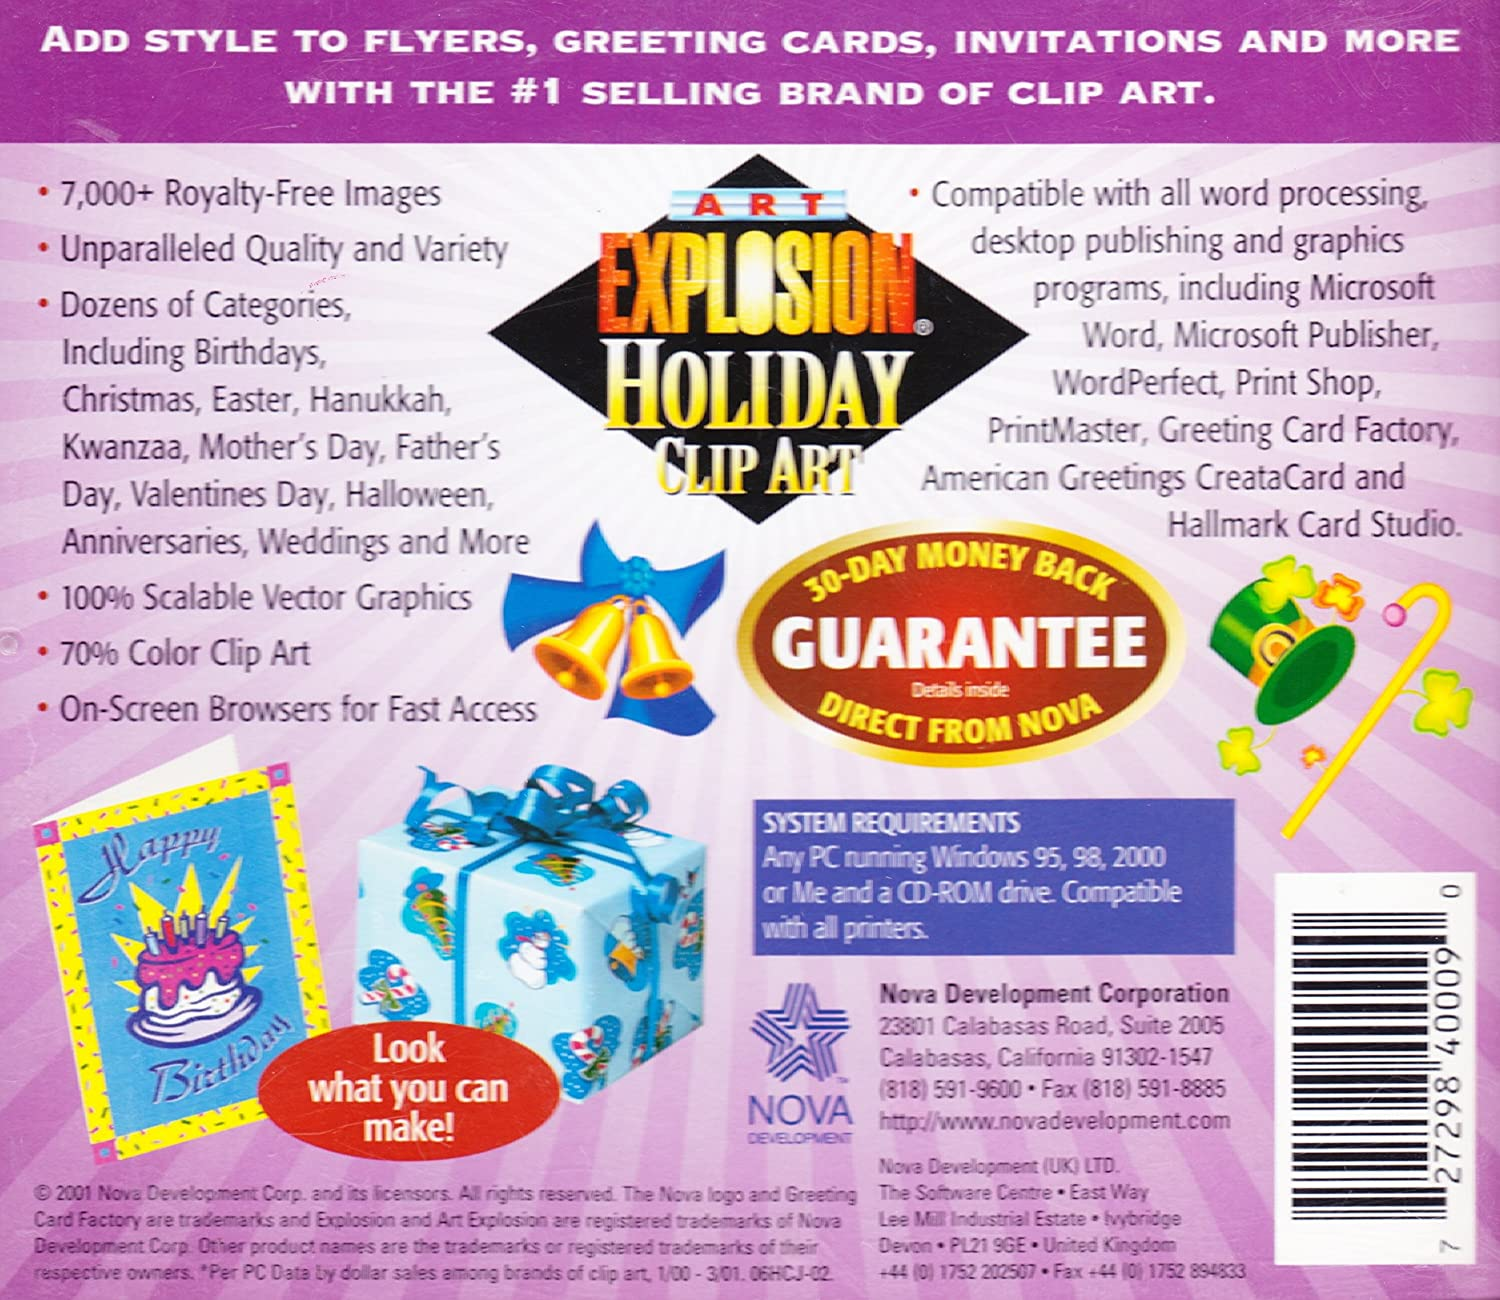 Art Explosion Royalty Free Holiday Clip Art For Flyers Greeting